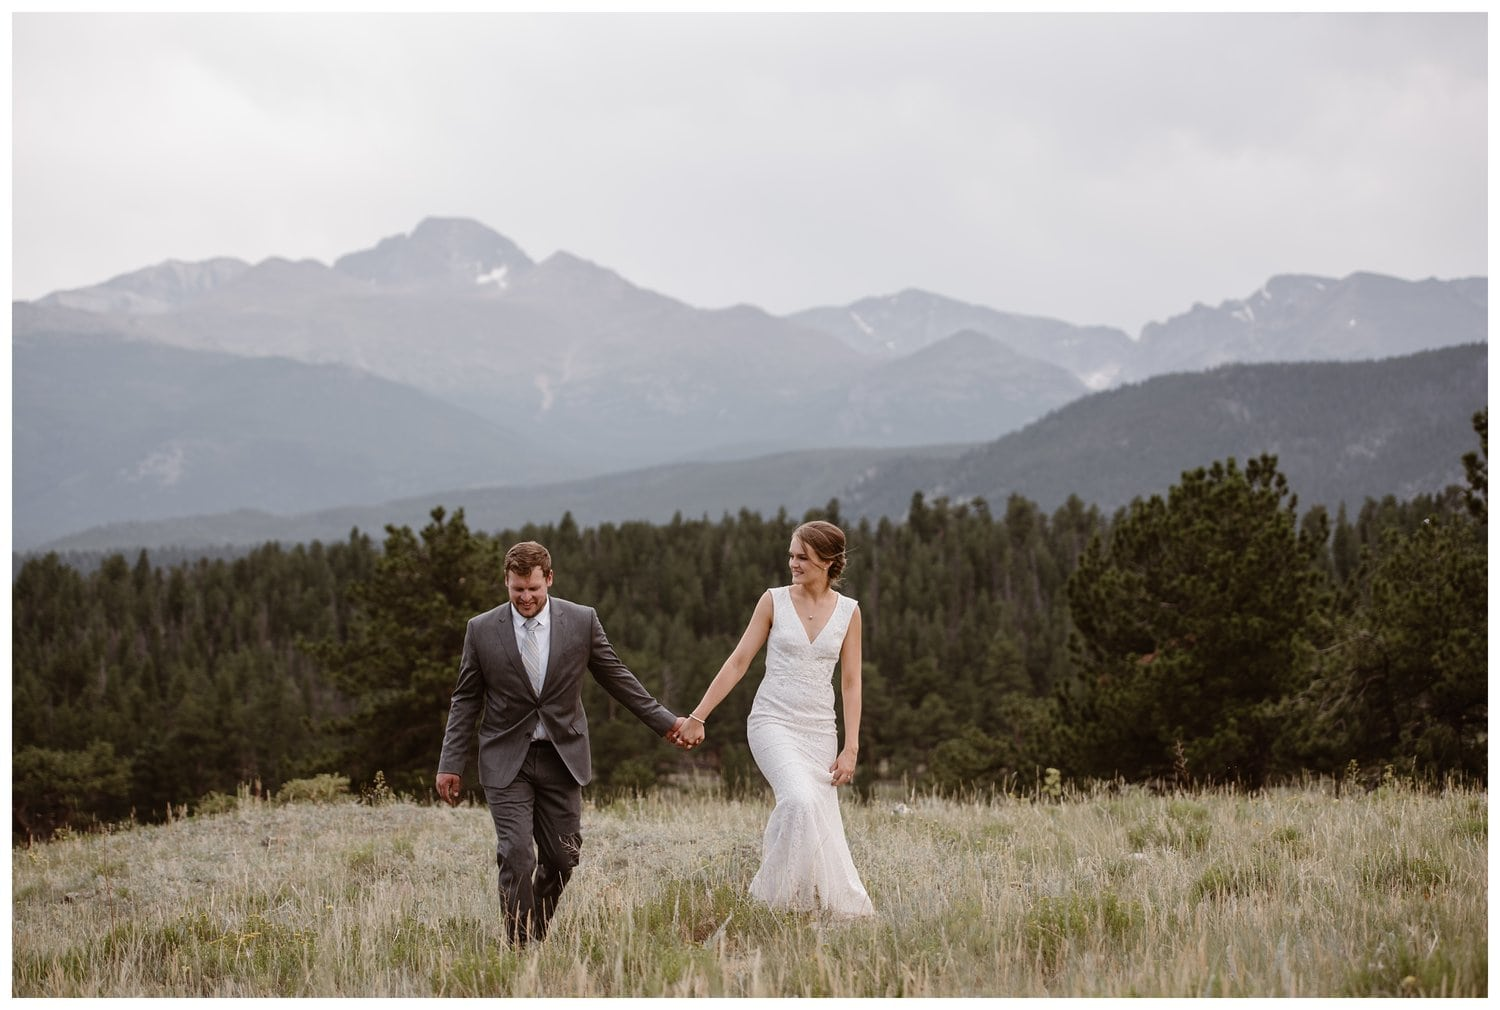 Bride and groom hold hands at Yosemite National Park.